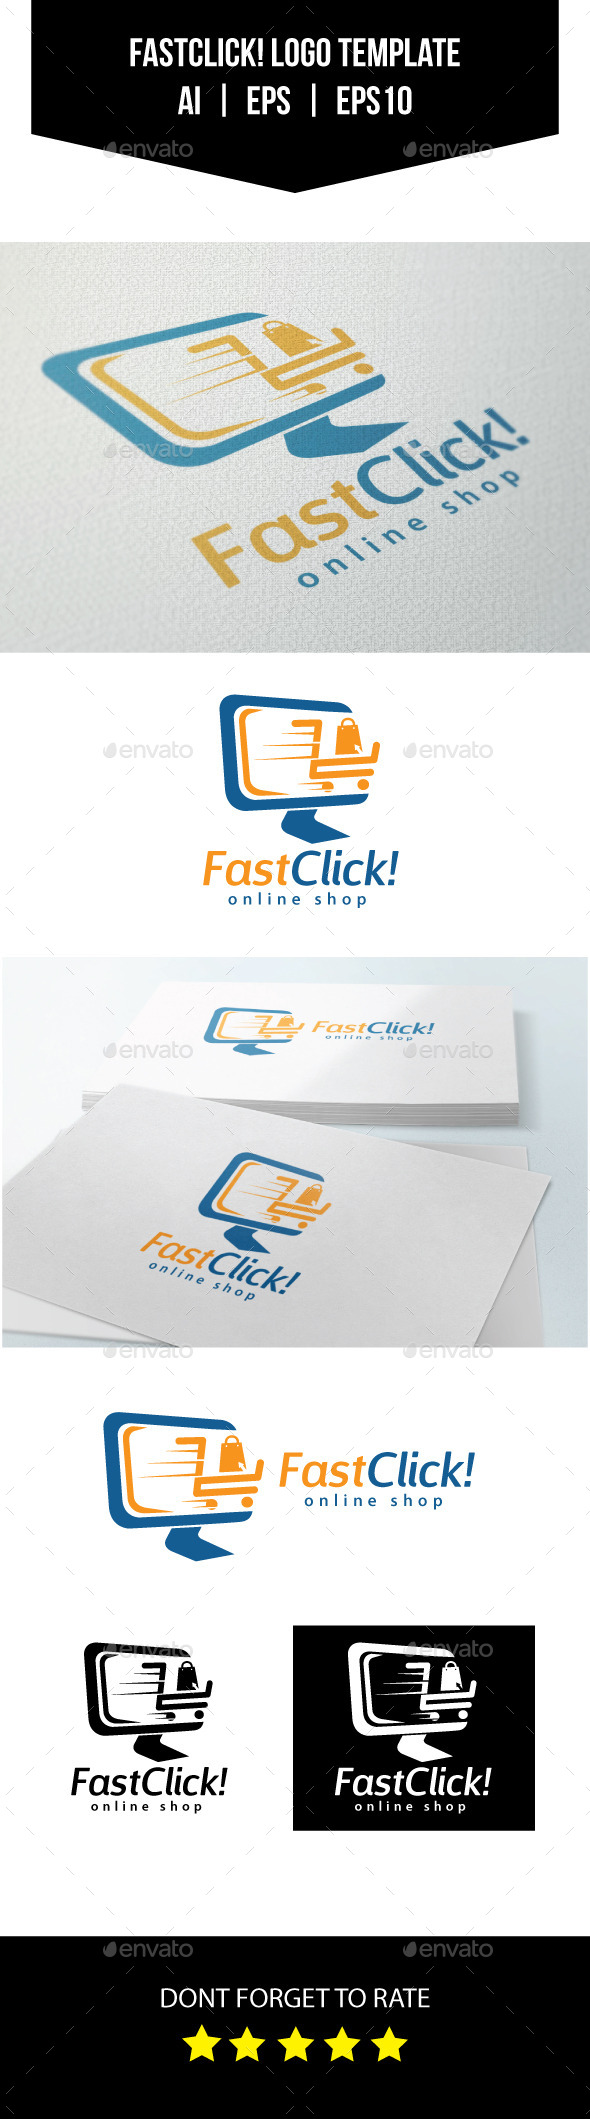 GraphicRiver Online Shop Logo Template 10750464